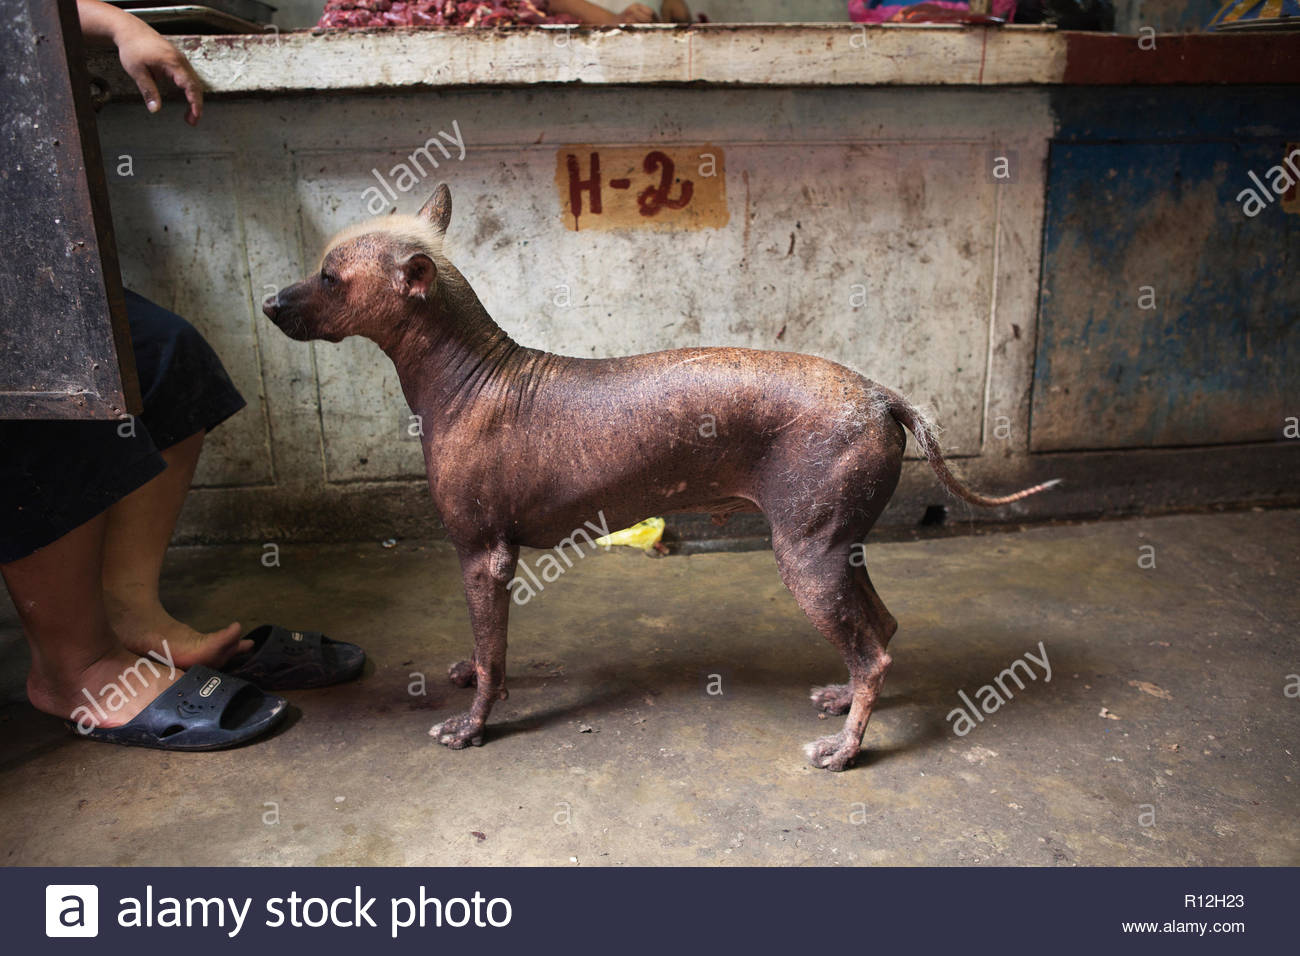 A peruvian hairless dog at a market - Stock Image